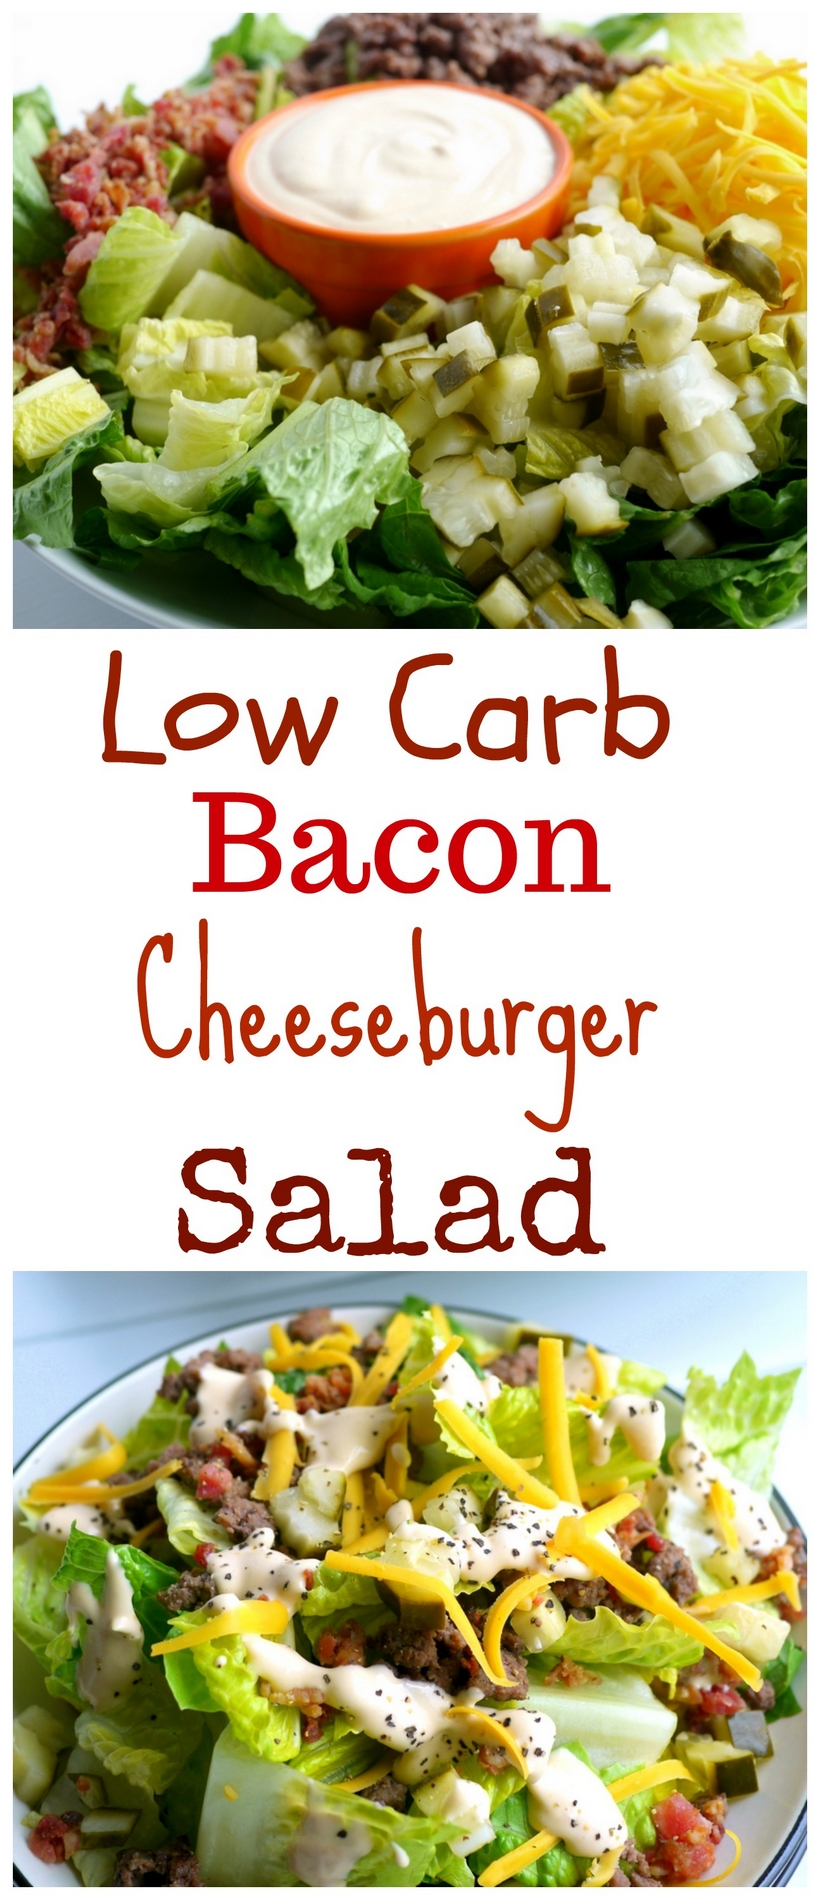 If you are trying to cut sugar out of your diet, this Low Carb Bacon Cheeseburger Salad Recipe is the perfect meal for you. Who needs the bun anyway? You'll be surprised how much this flavorful salad mimics your favorite burger. A gluten-free, keto-friendly meal that makes a healthy lunch or dinner from NoblePig.com. #noblepig #salad #keto #lowcarb #glutenfree #cheeseburger #healthyeats